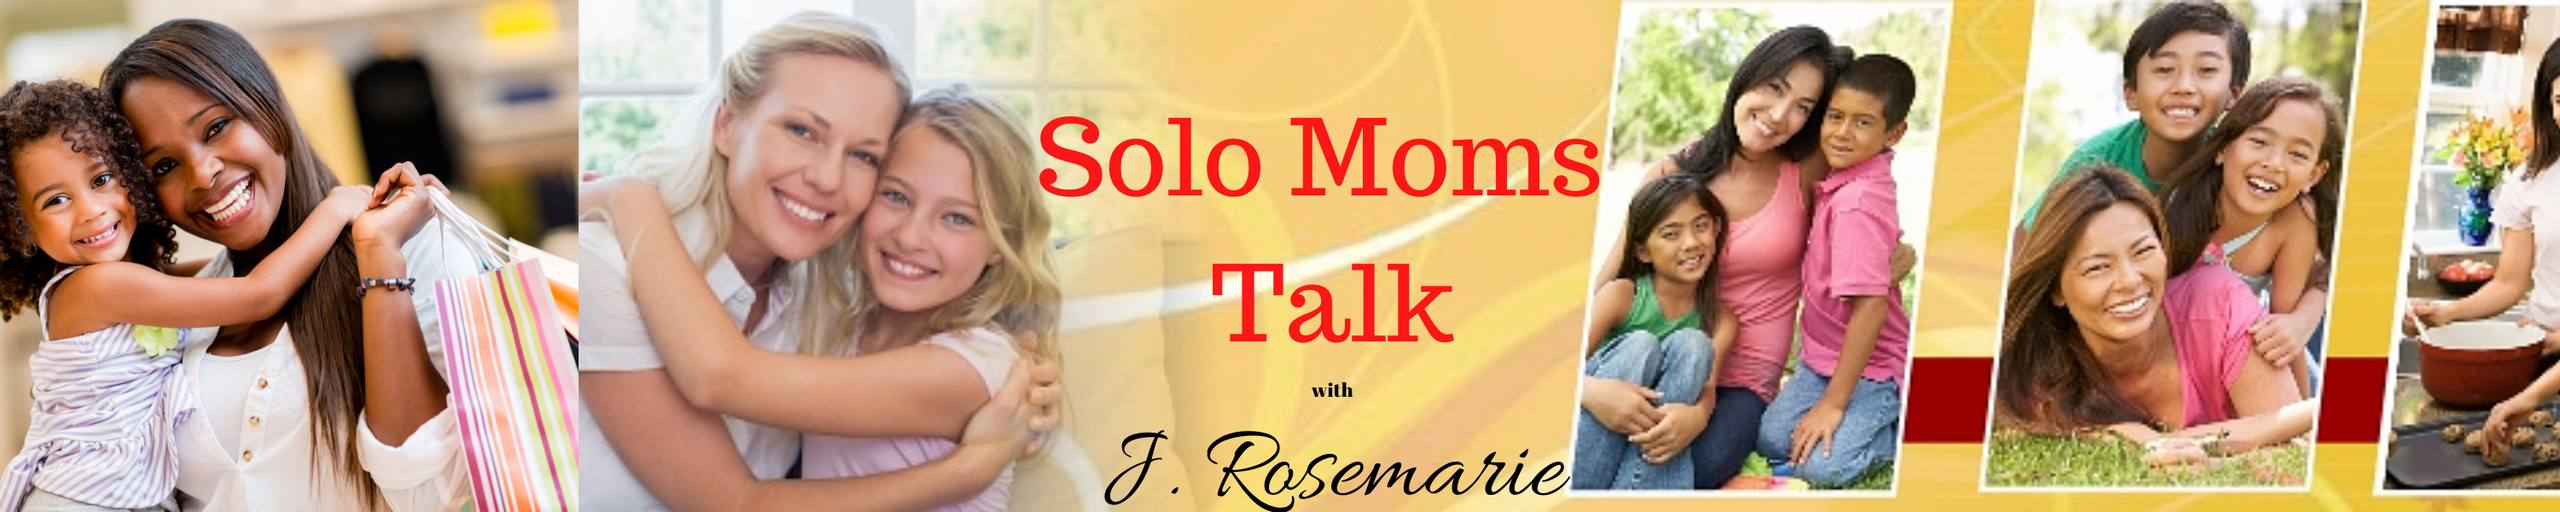 solo moms talk